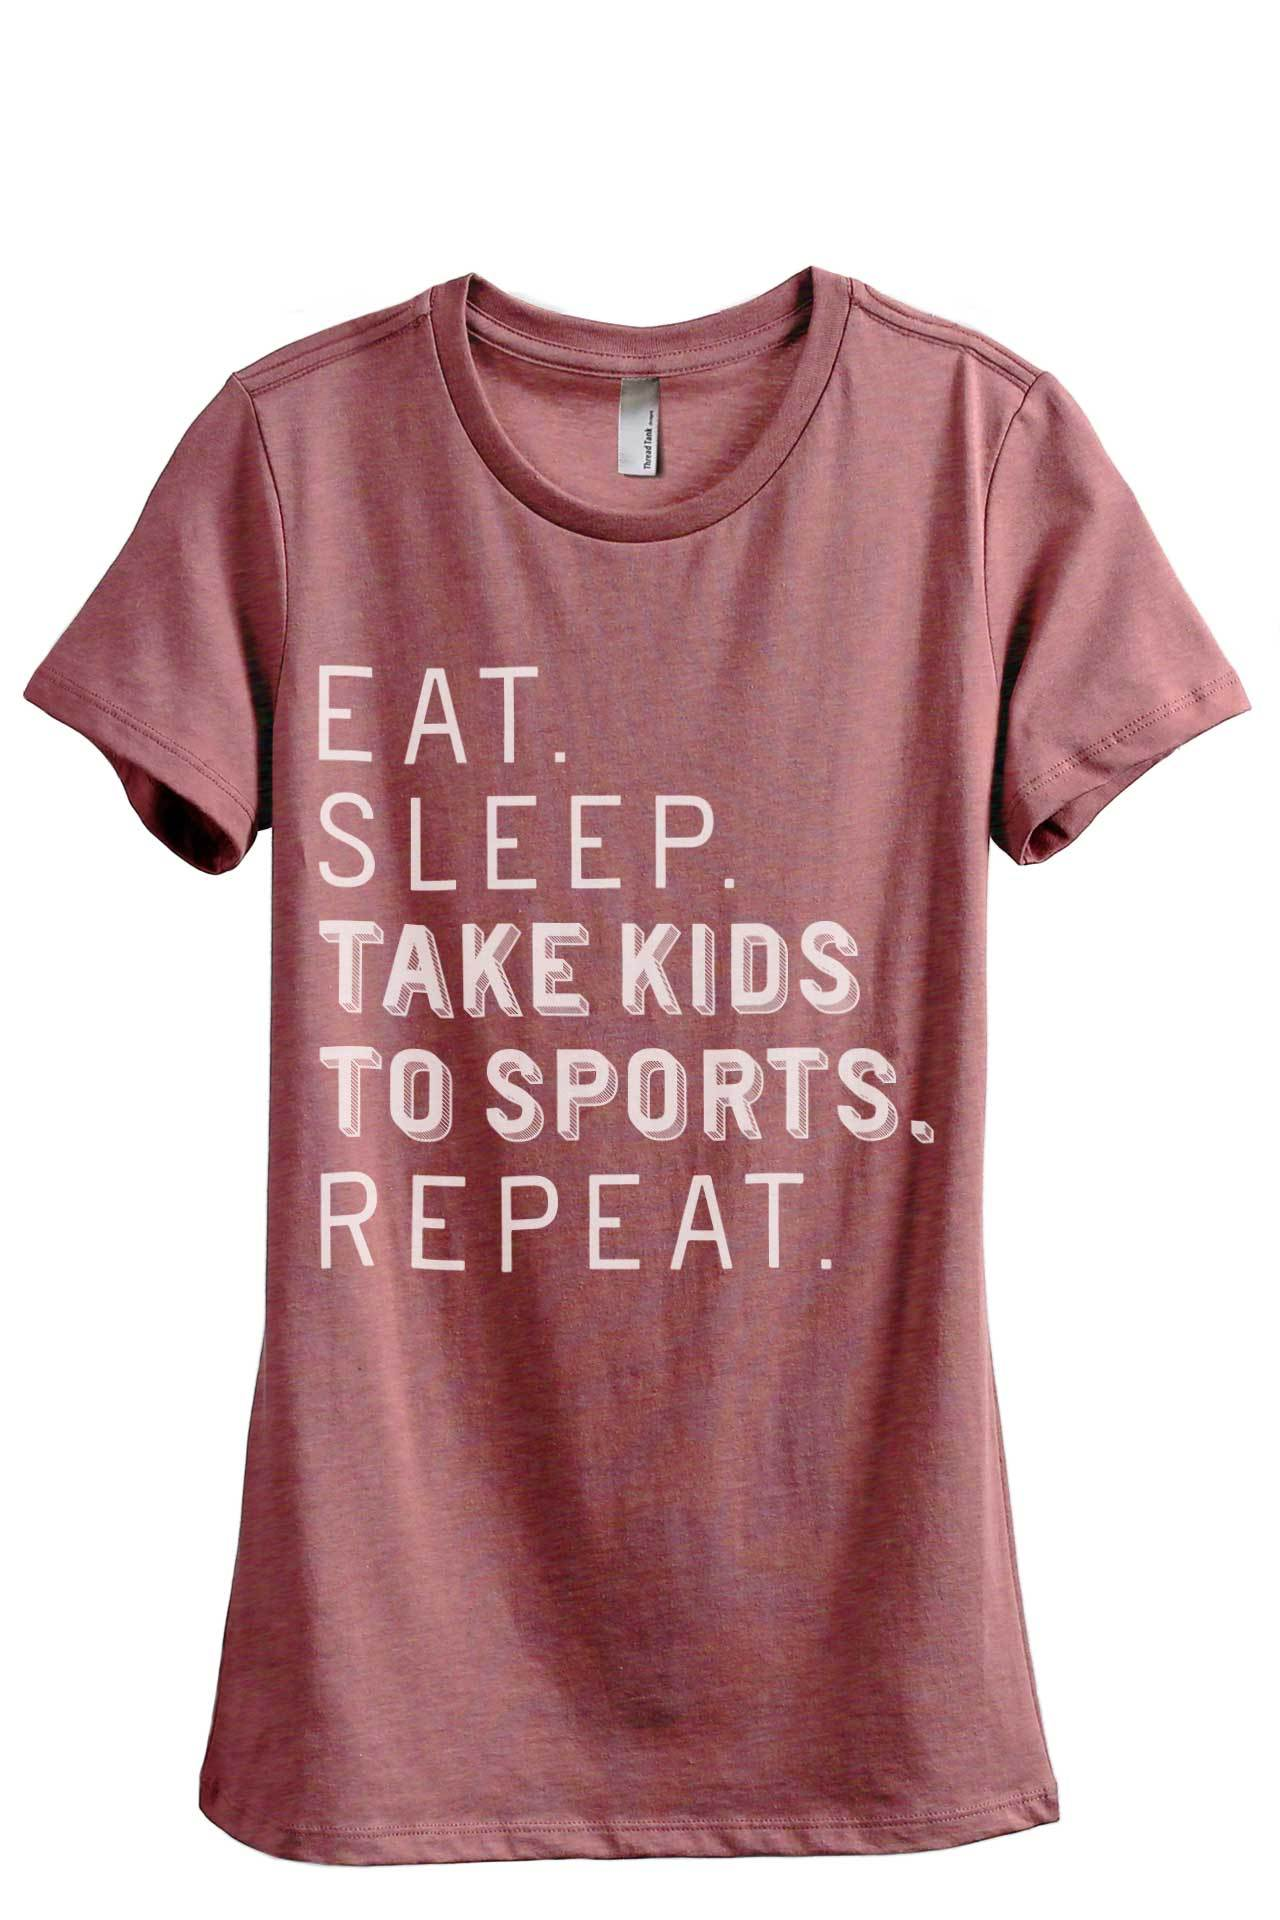 Eat Sleep Take Kids Sports Repeat - Thread Tank | Stories You Can Wear | T-Shirts, Tank Tops and Sweatshirts